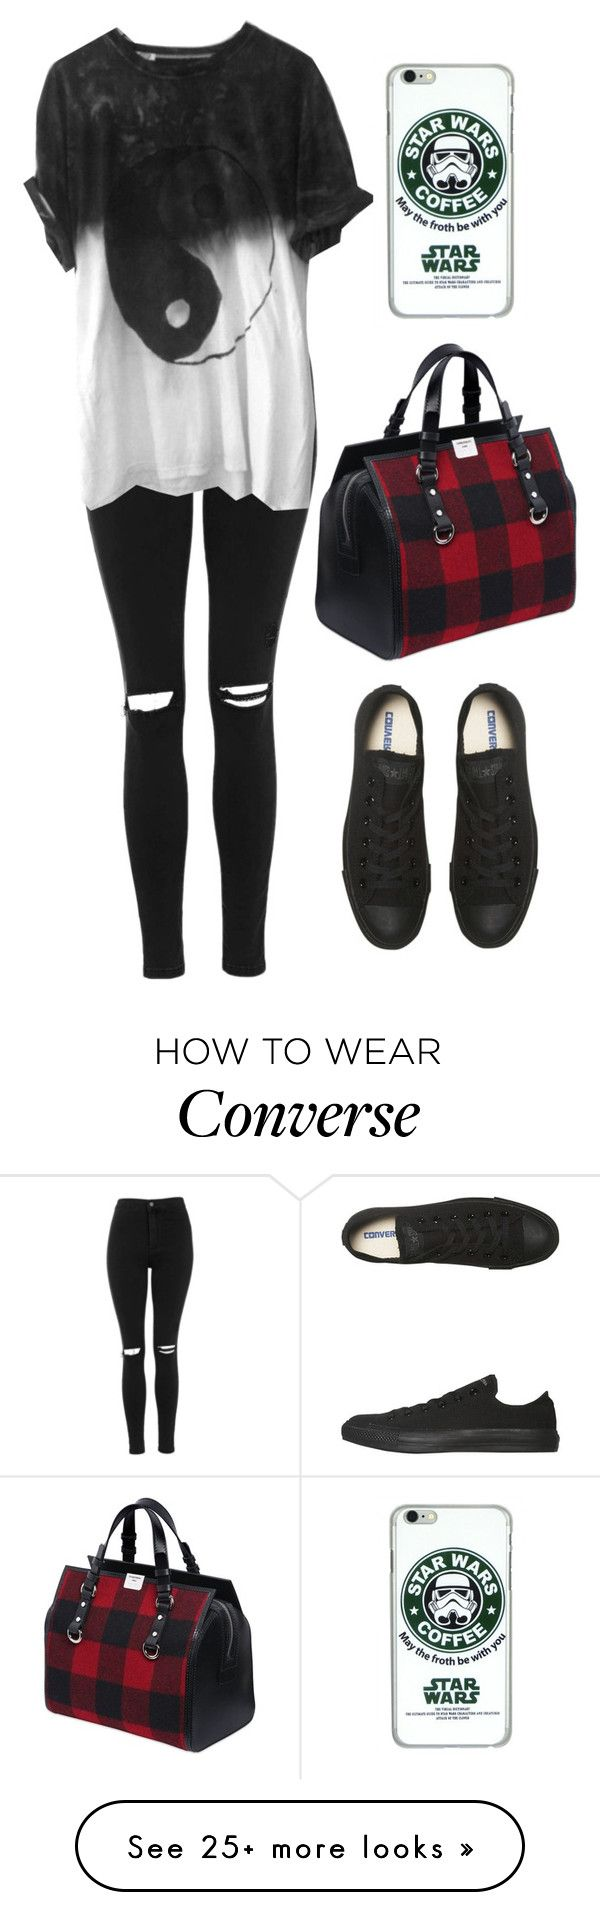 """""""#314"""" by uccelli on Polyvore featuring Topshop, Dsquared2, Converse, women's clothing, women, female, woman, misses and juniors"""